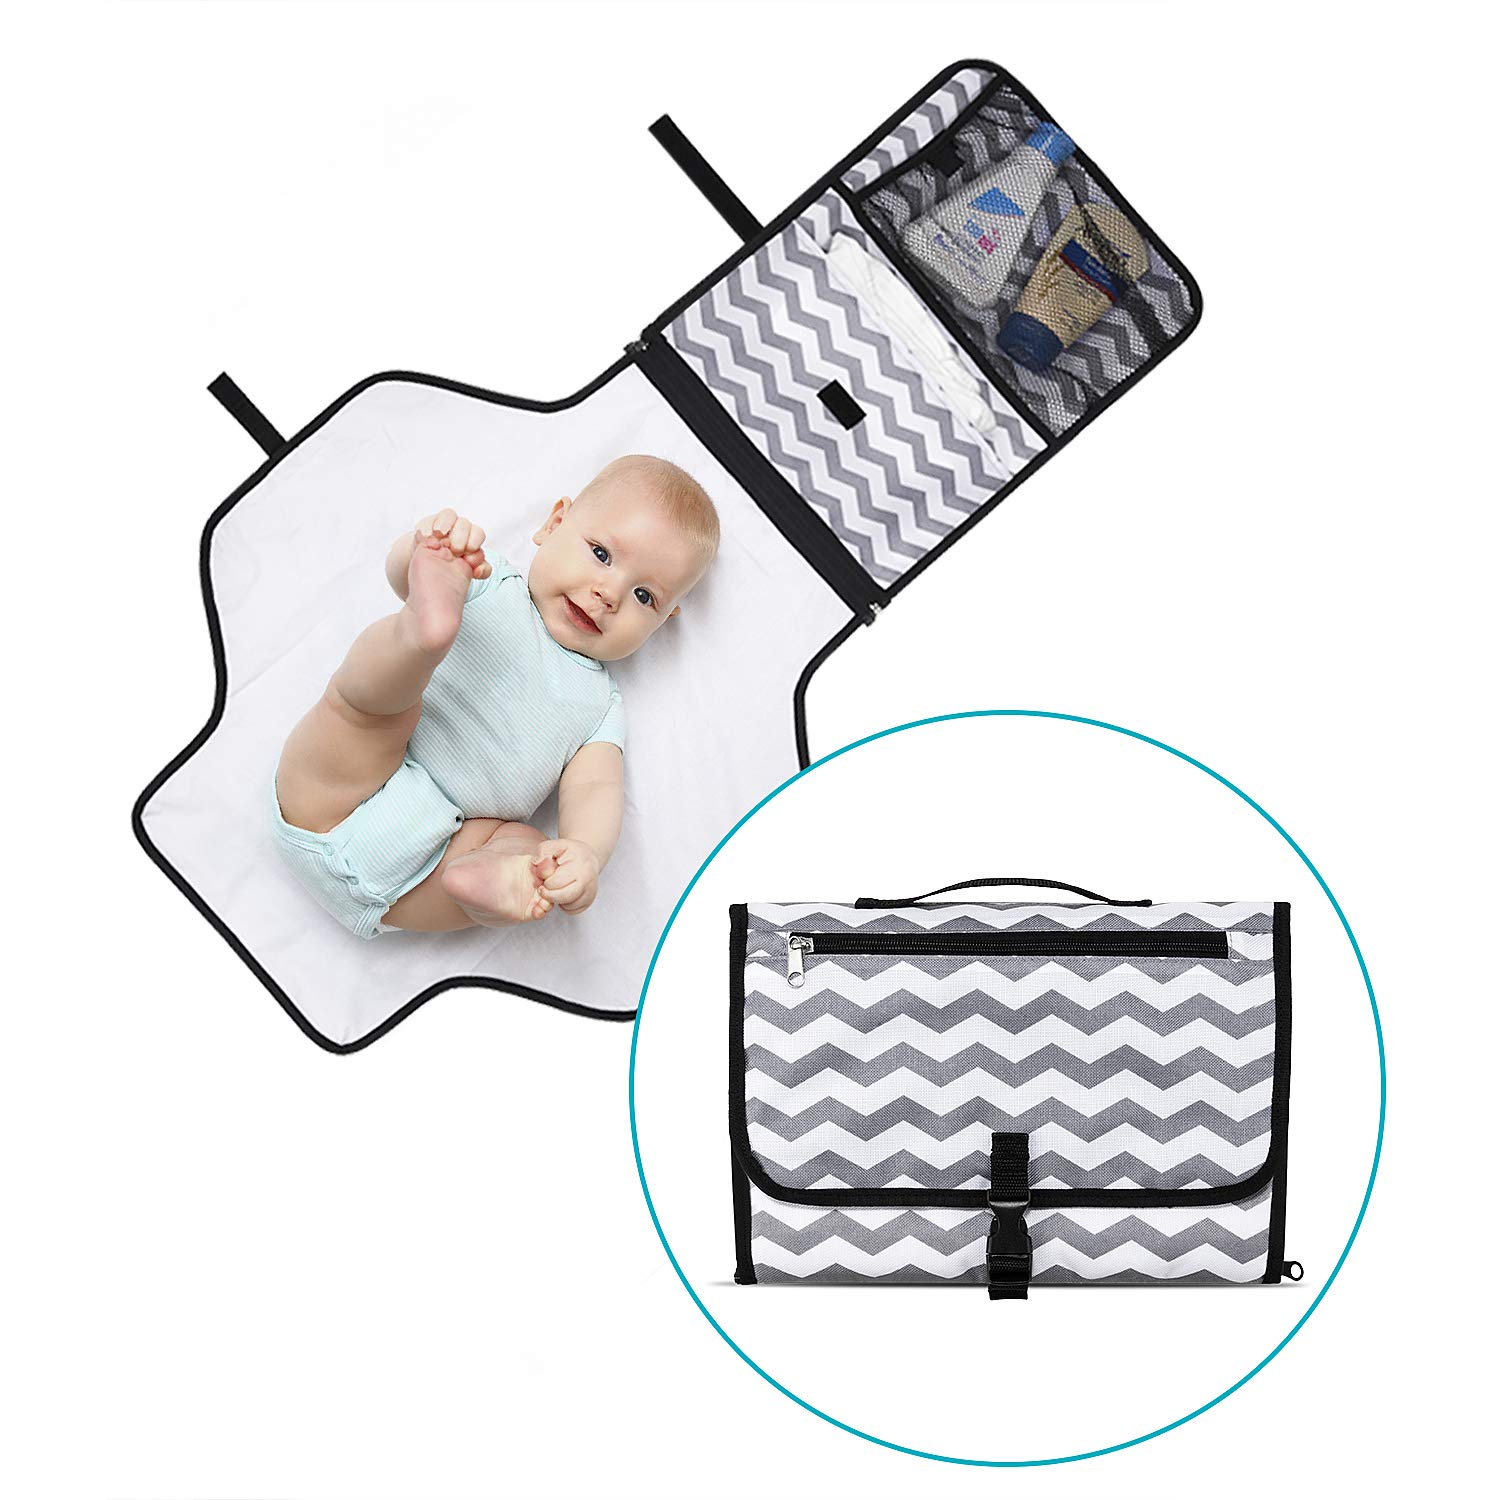 Momcozy Portable Waterproof Diaper Changing Pad Clutch, Travel Changer Station Kit for Baby Diapering,Detachable and Wipeable